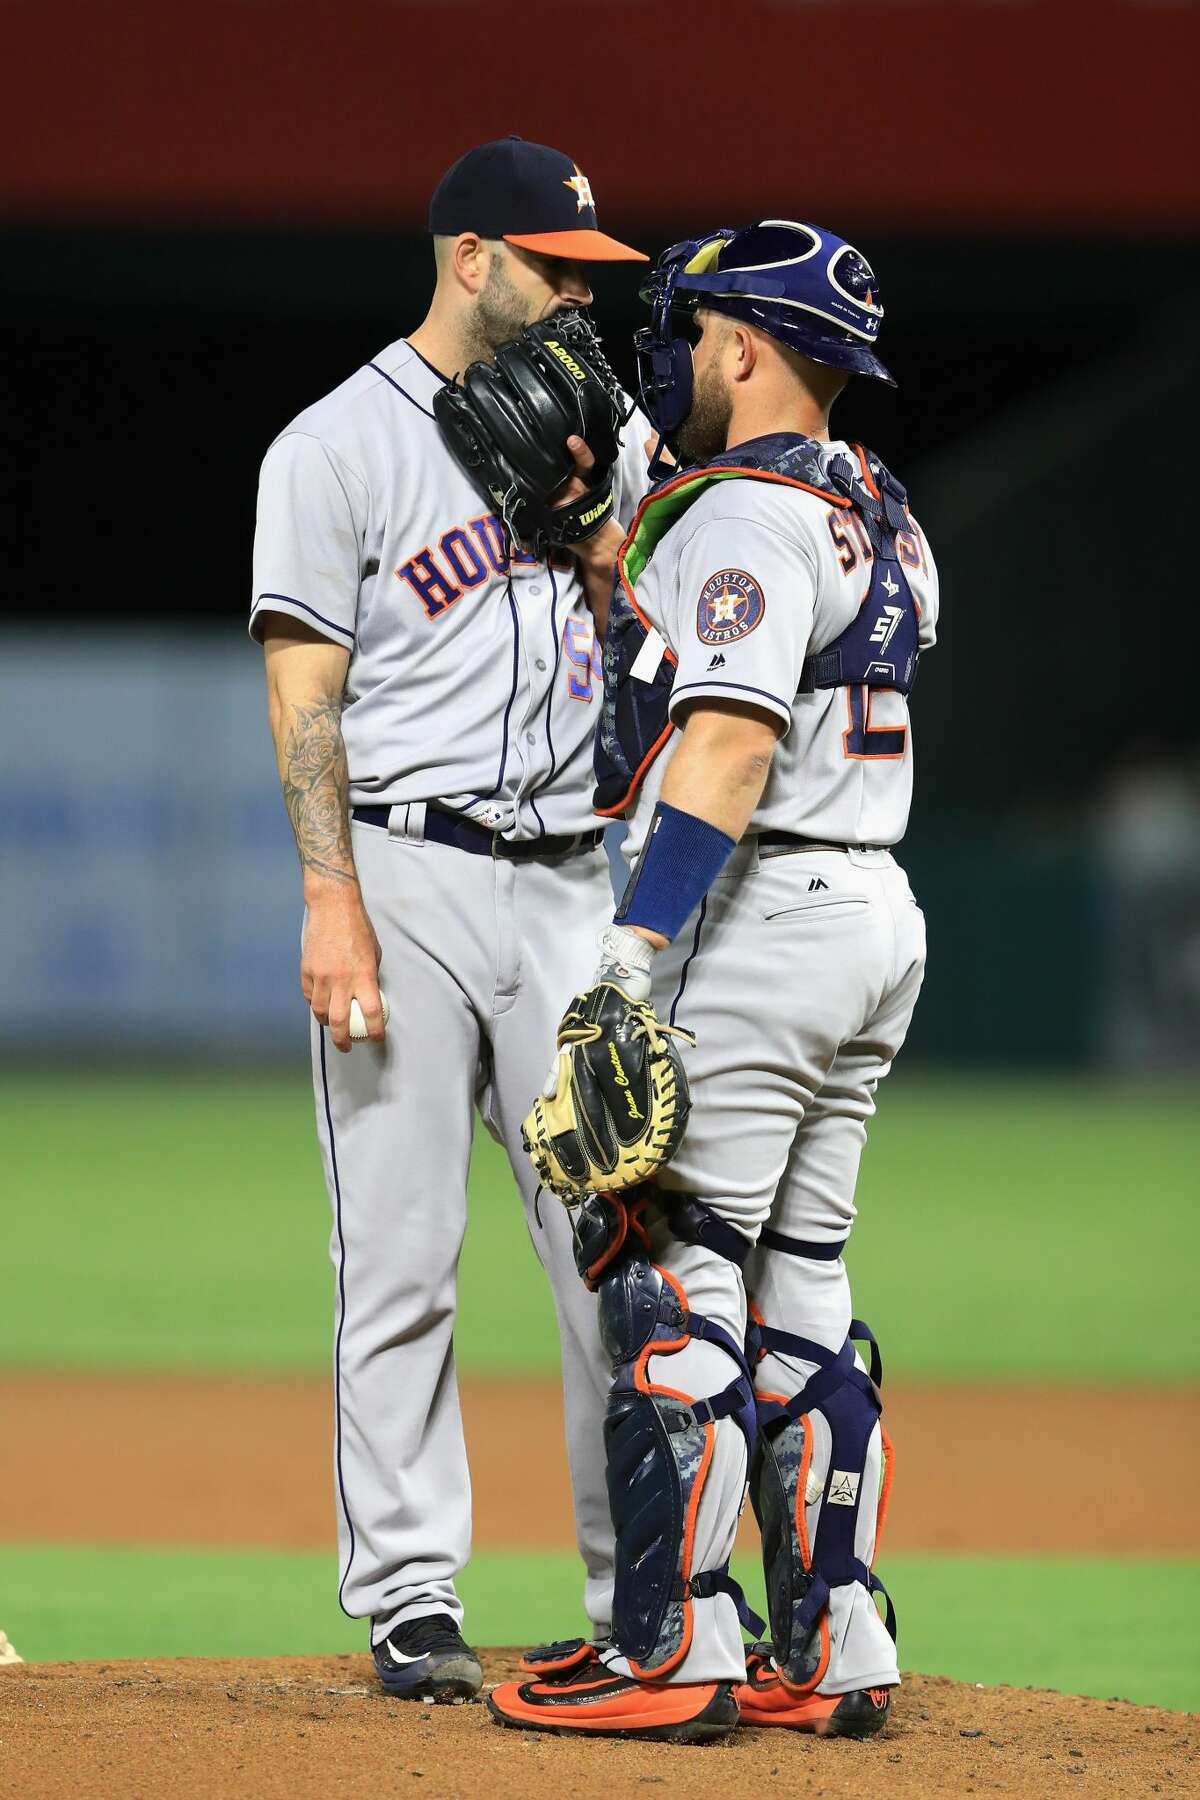 ANAHEIM, CA - SEPTEMBER 13: Mike Fiers #54 talks with Max Stassi #12 of the Houston Astros during the first inning of a game against the Los Angeles Angels of Anaheim at Angel Stadium of Anaheim on September 13, 2017 in Anaheim, California. (Photo by Sean M. Haffey/Getty Images)